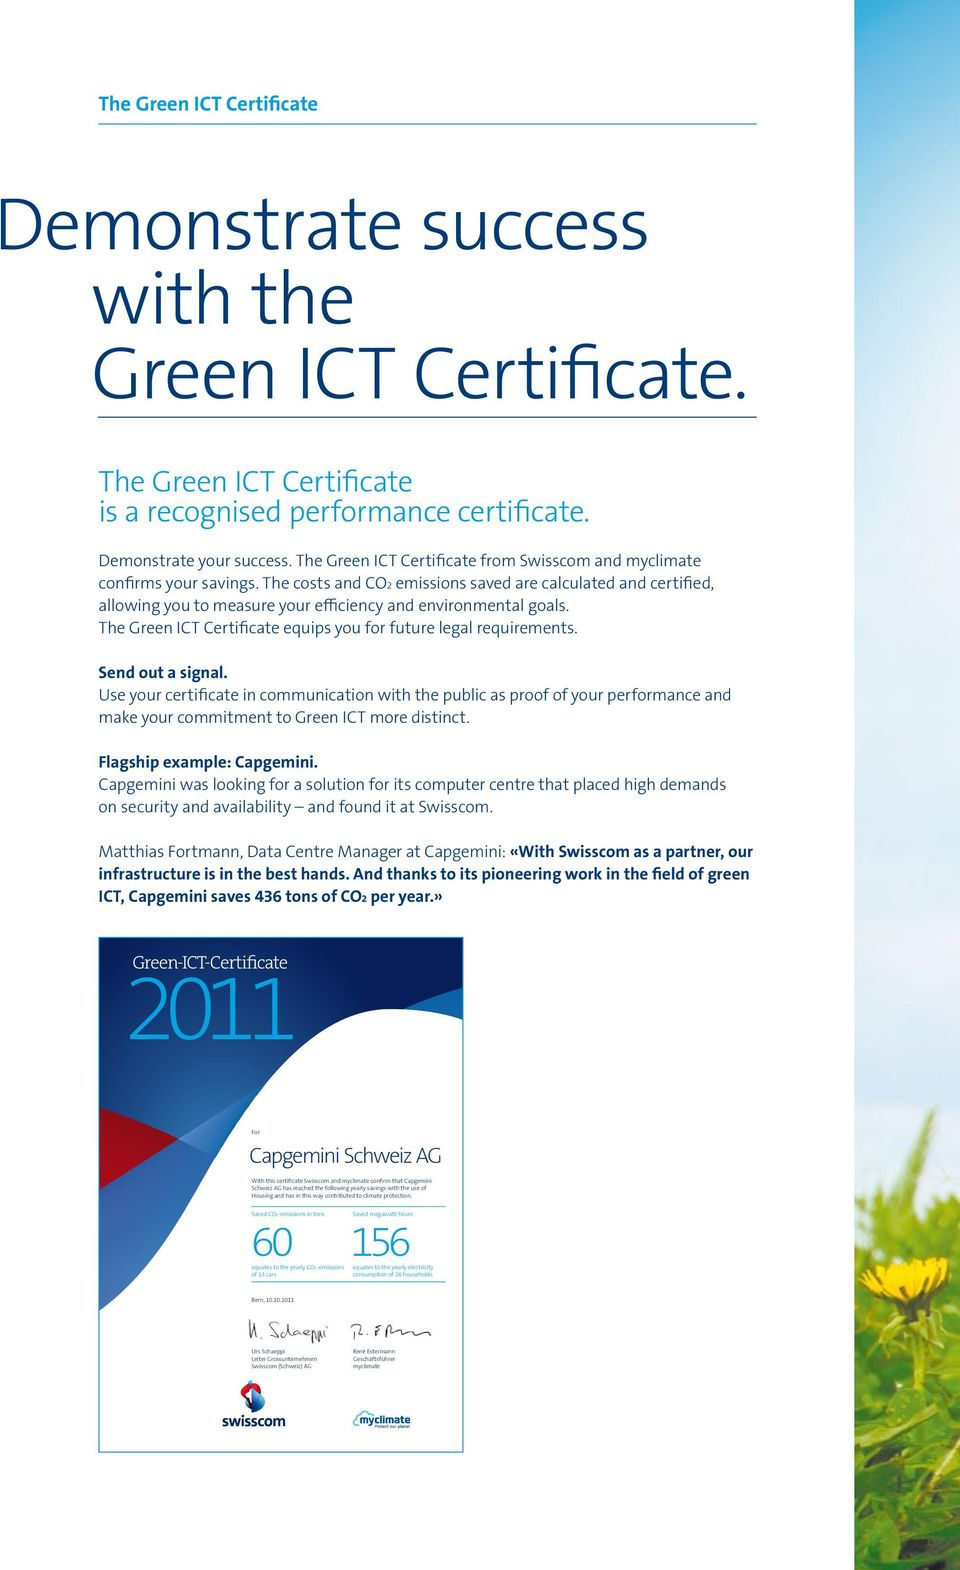 The costs and CO2 emissions saved are calculated and certified, allowing you to measure your efficiency and environmental goals. The Green ICT Certificate equips you for future legal requirements.